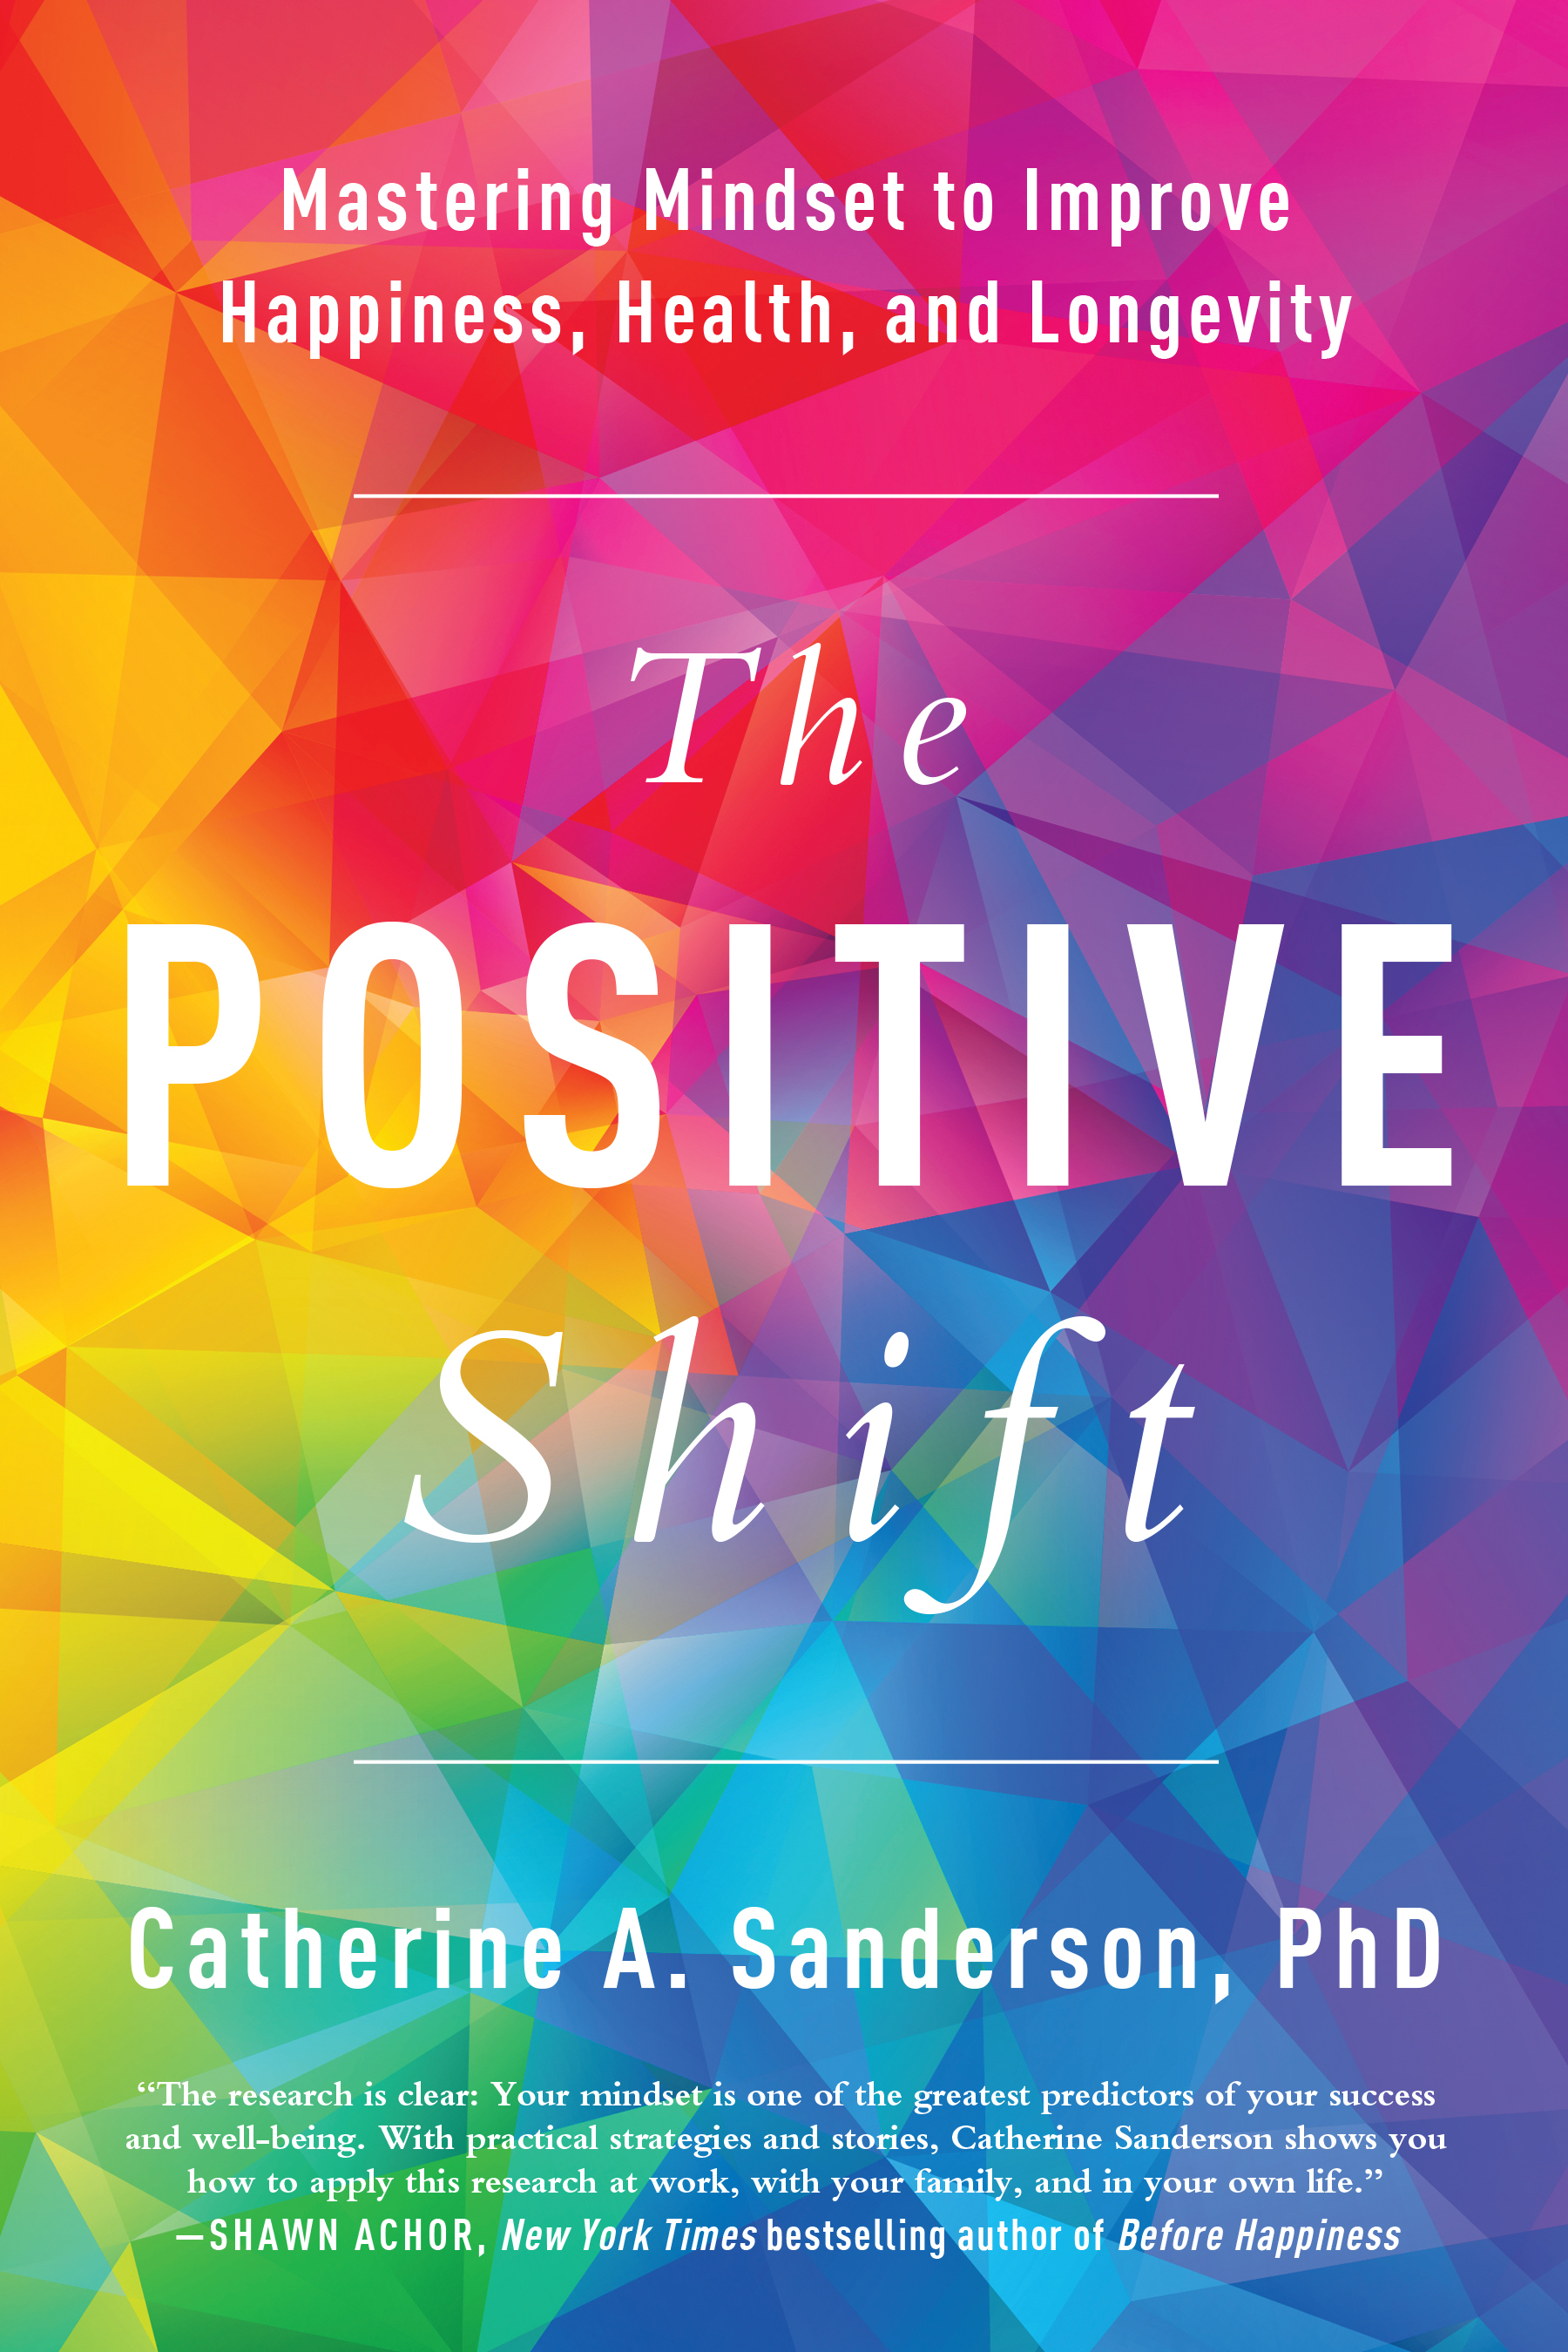 The Positive Shift Cover by Catherine A. Sanderson, PhD.